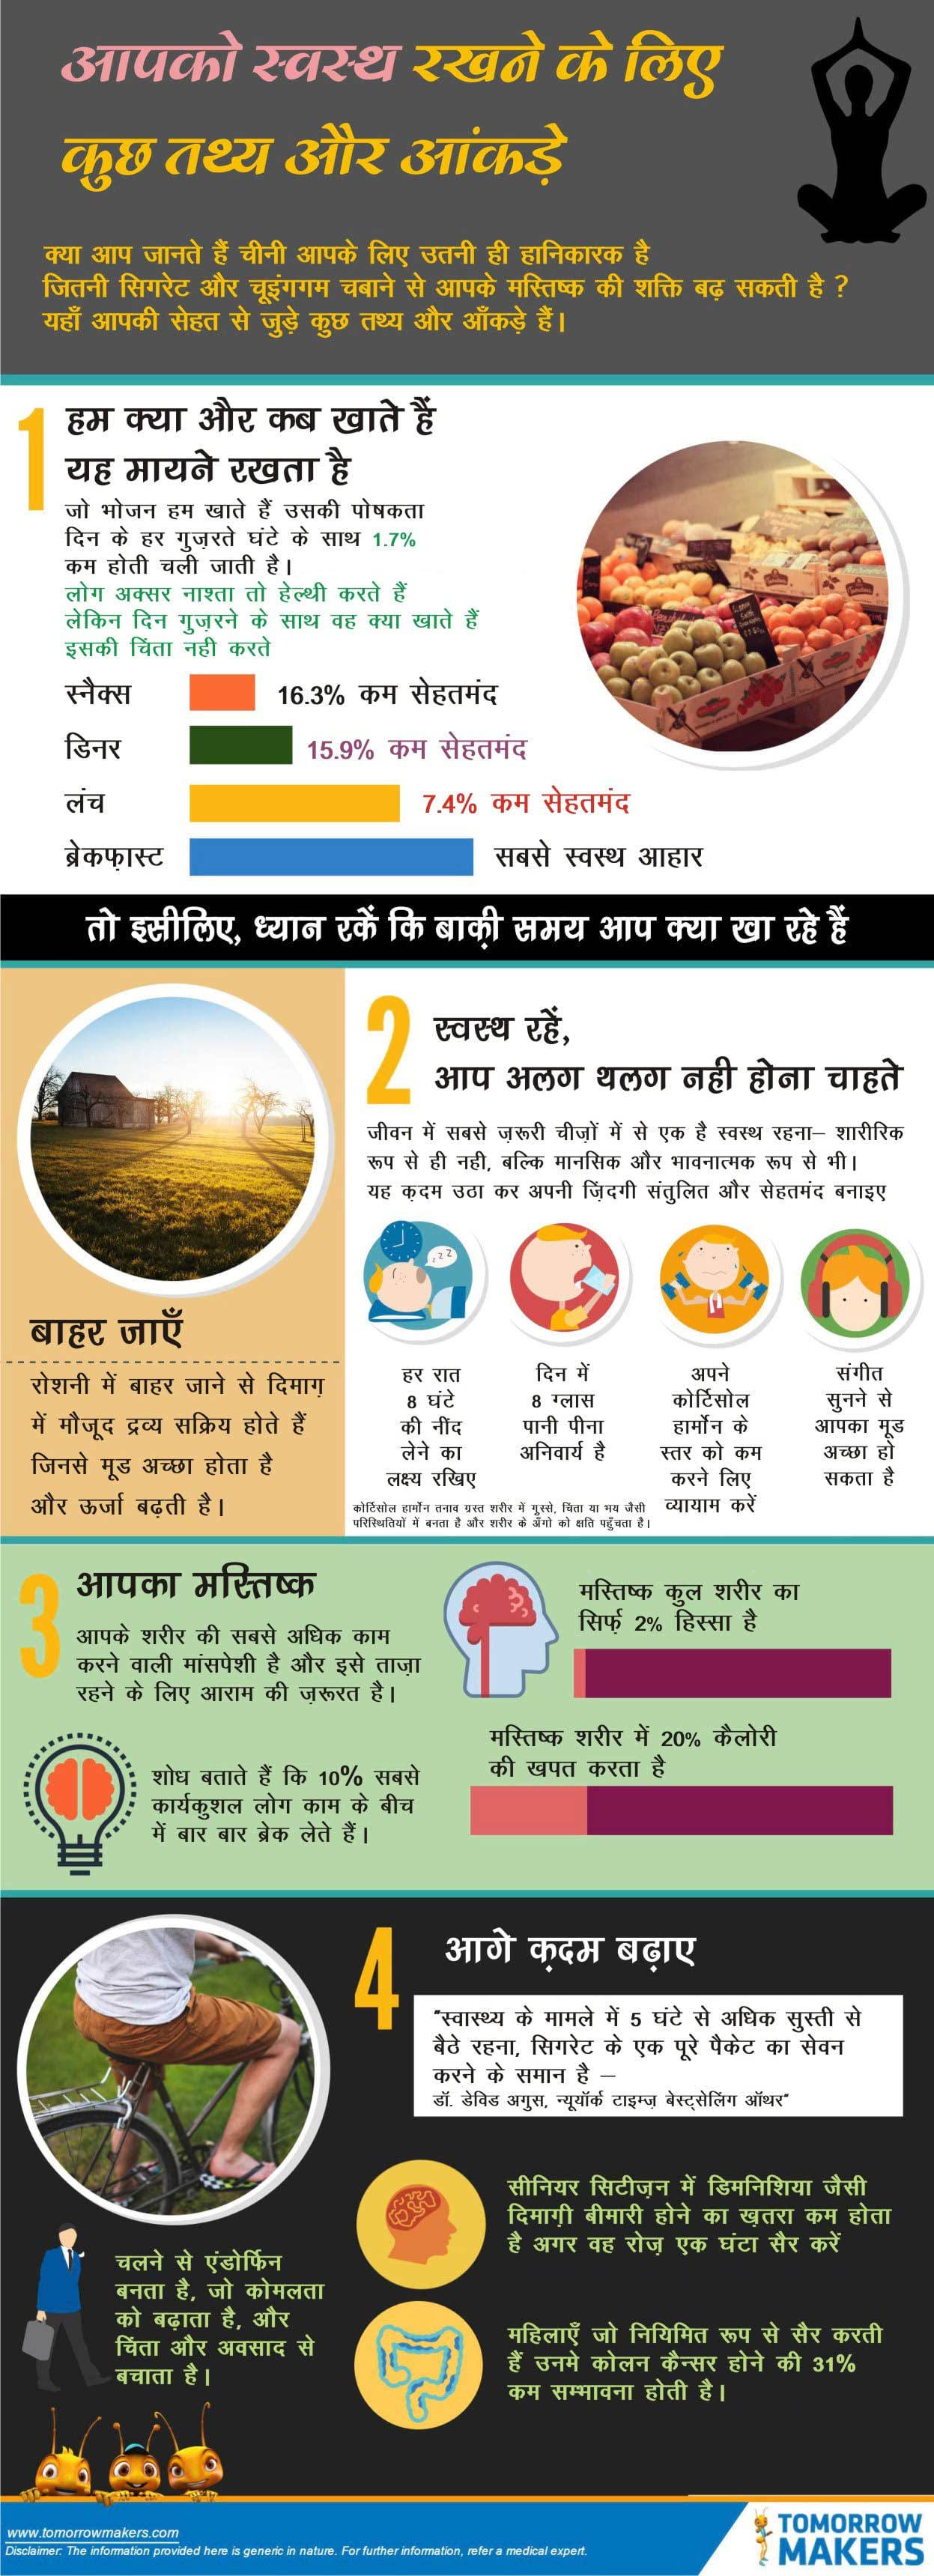 Facts and figures to keep you healthy